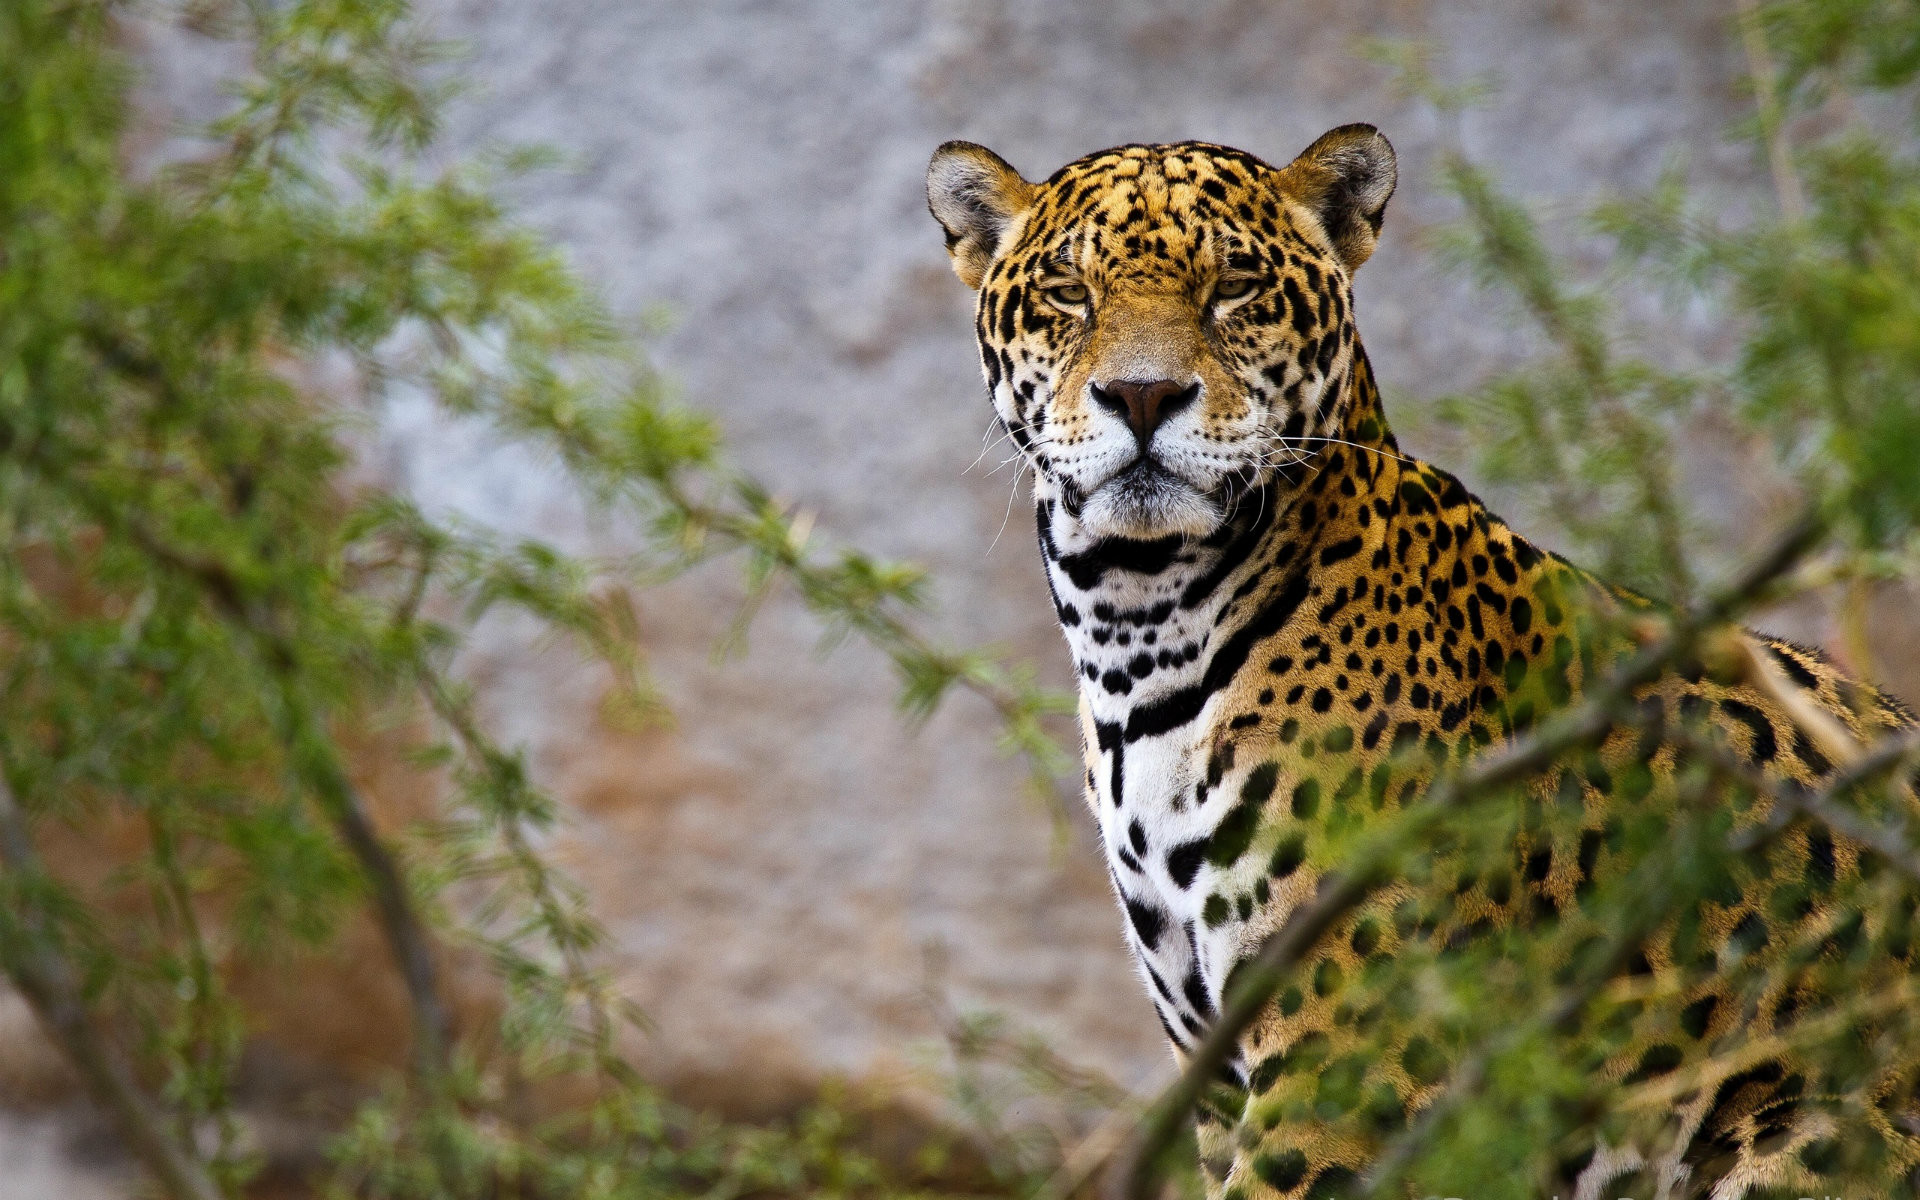 Jaguar wallpapers 63 images - Jaguar animal hd wallpapers ...